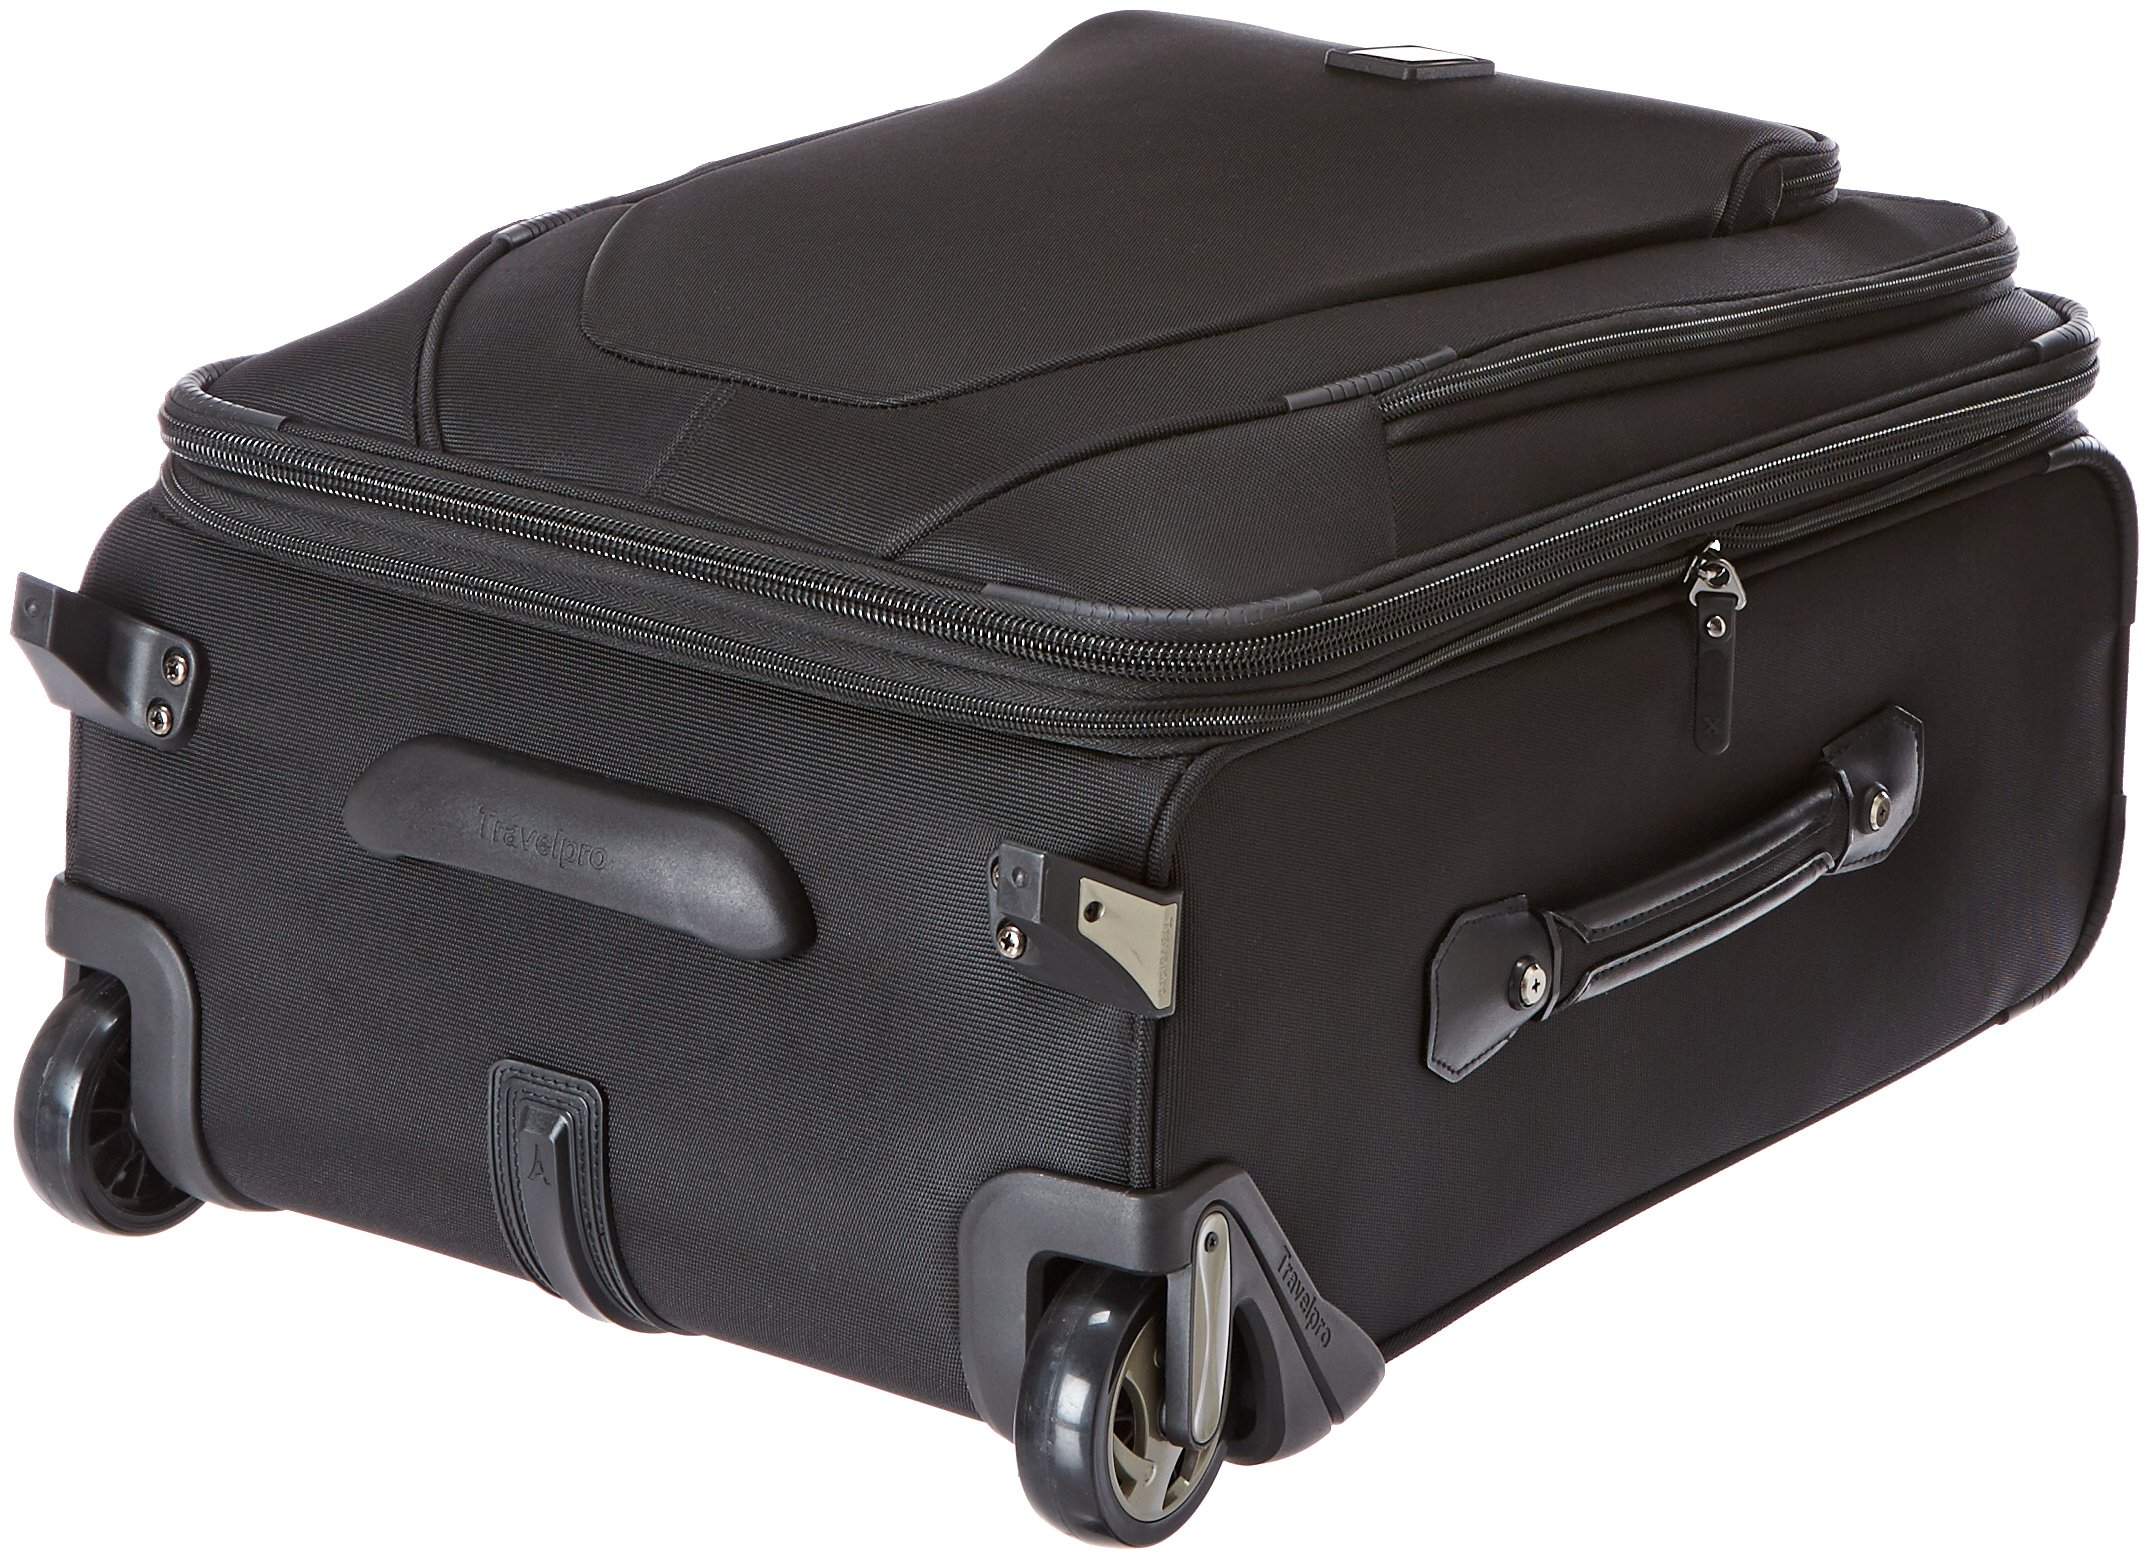 Travelpro Crew 10 20 '' Expandable Business Plus Rollaboard, Balck by Travelpro (Image #4)